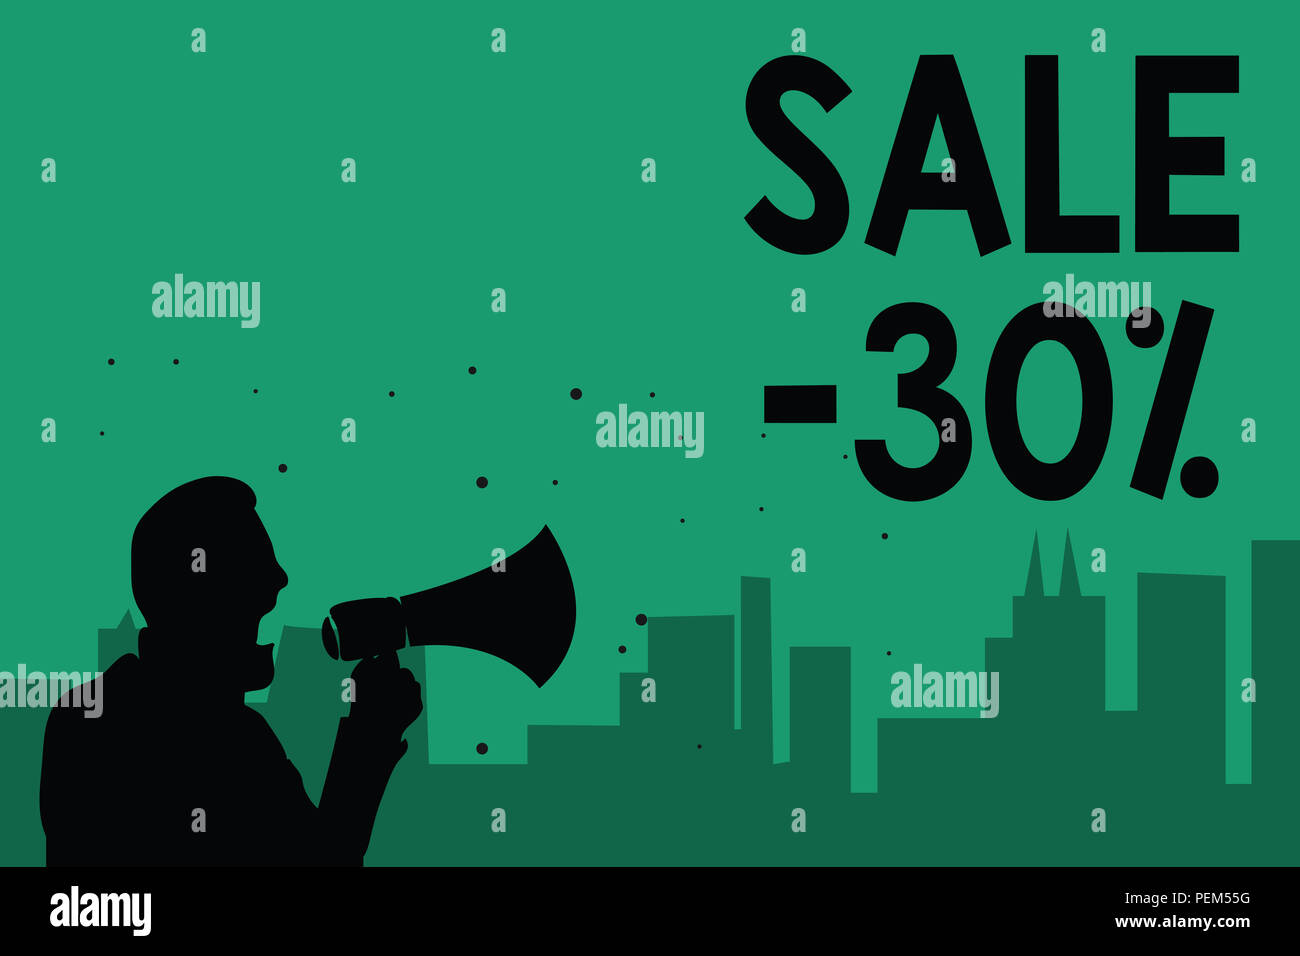 Word writing text Sale 30. Business concept for A promo price of an item at 30 percent markdown Man holding megaphone speaking politician making promi - Stock Image